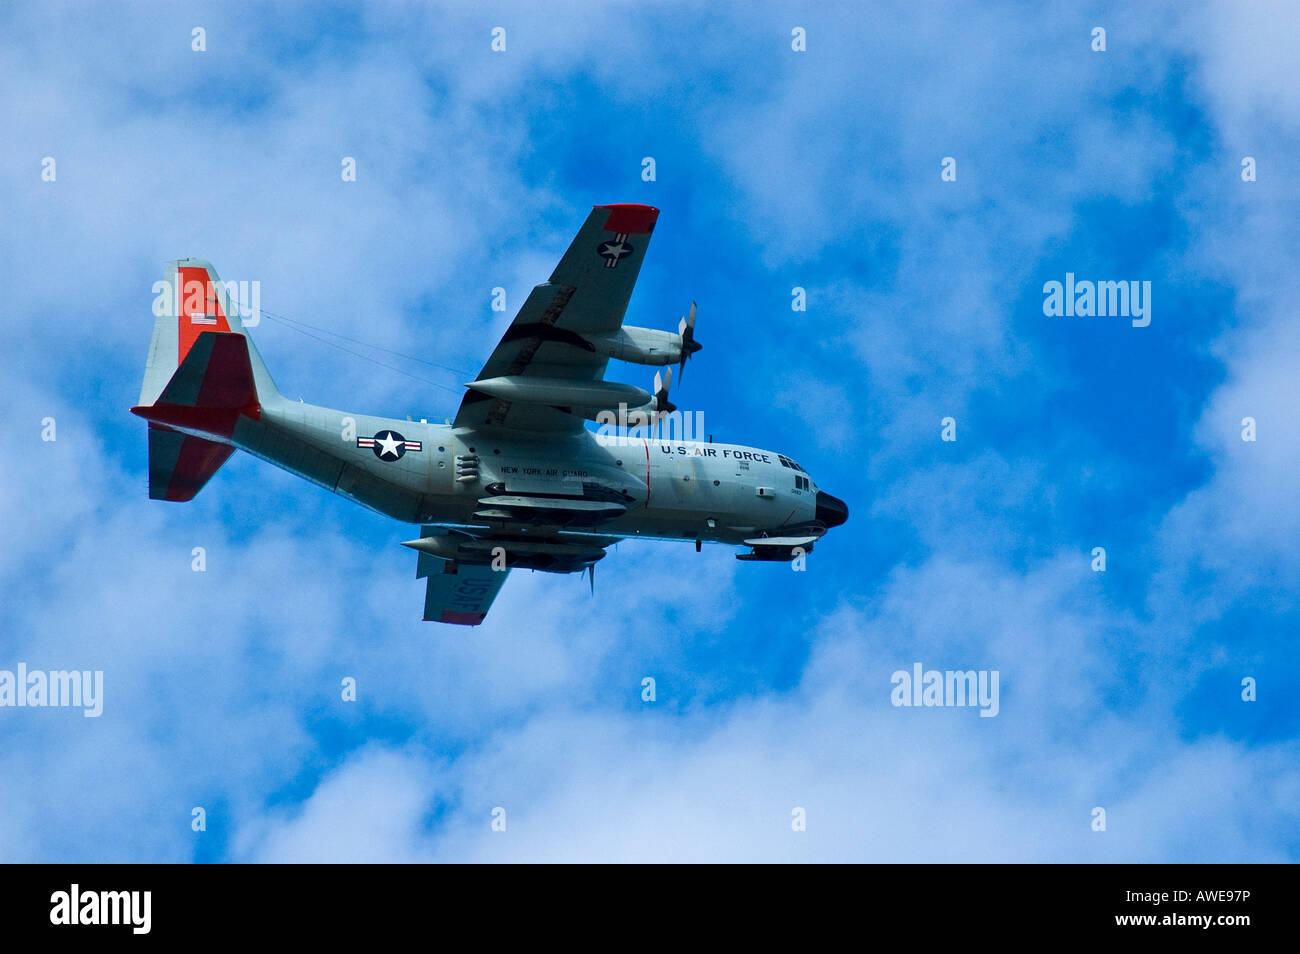 Military plane, US Air Force water plane - Stock Image